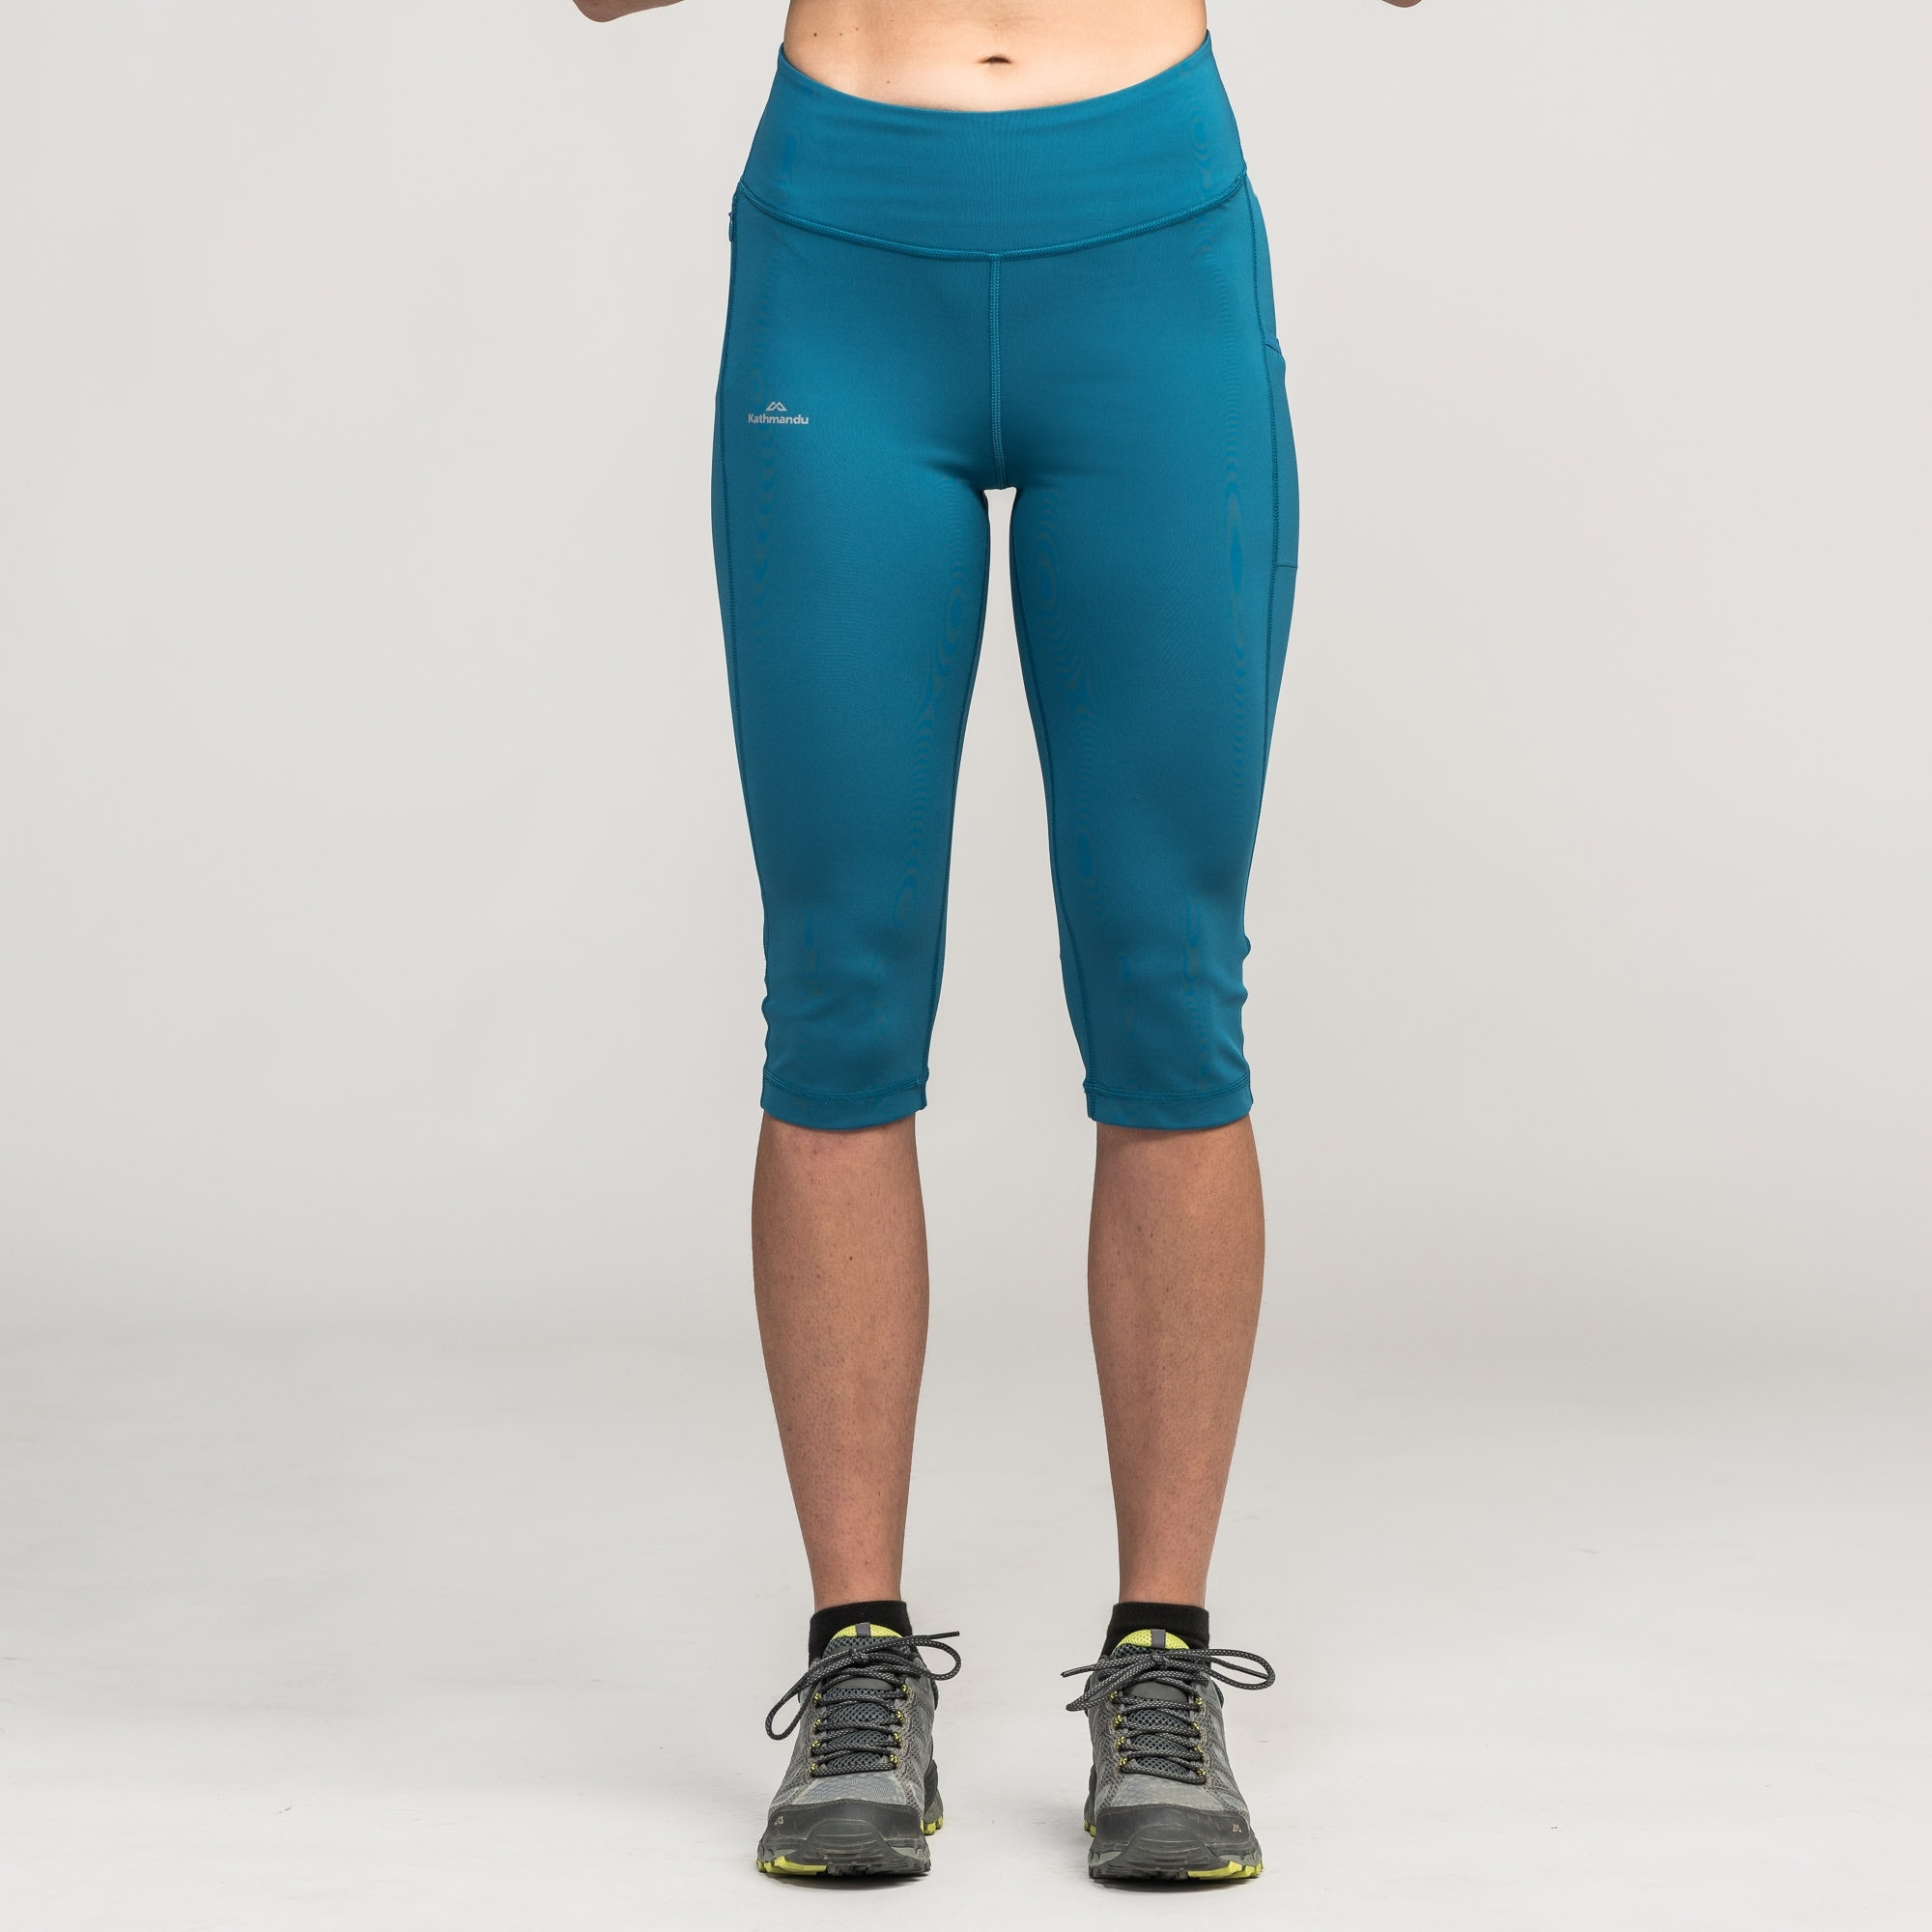 NEW-Kathmandu-Zeolite-Women-039-s-Active-Performance-3-4-Leggings thumbnail 16